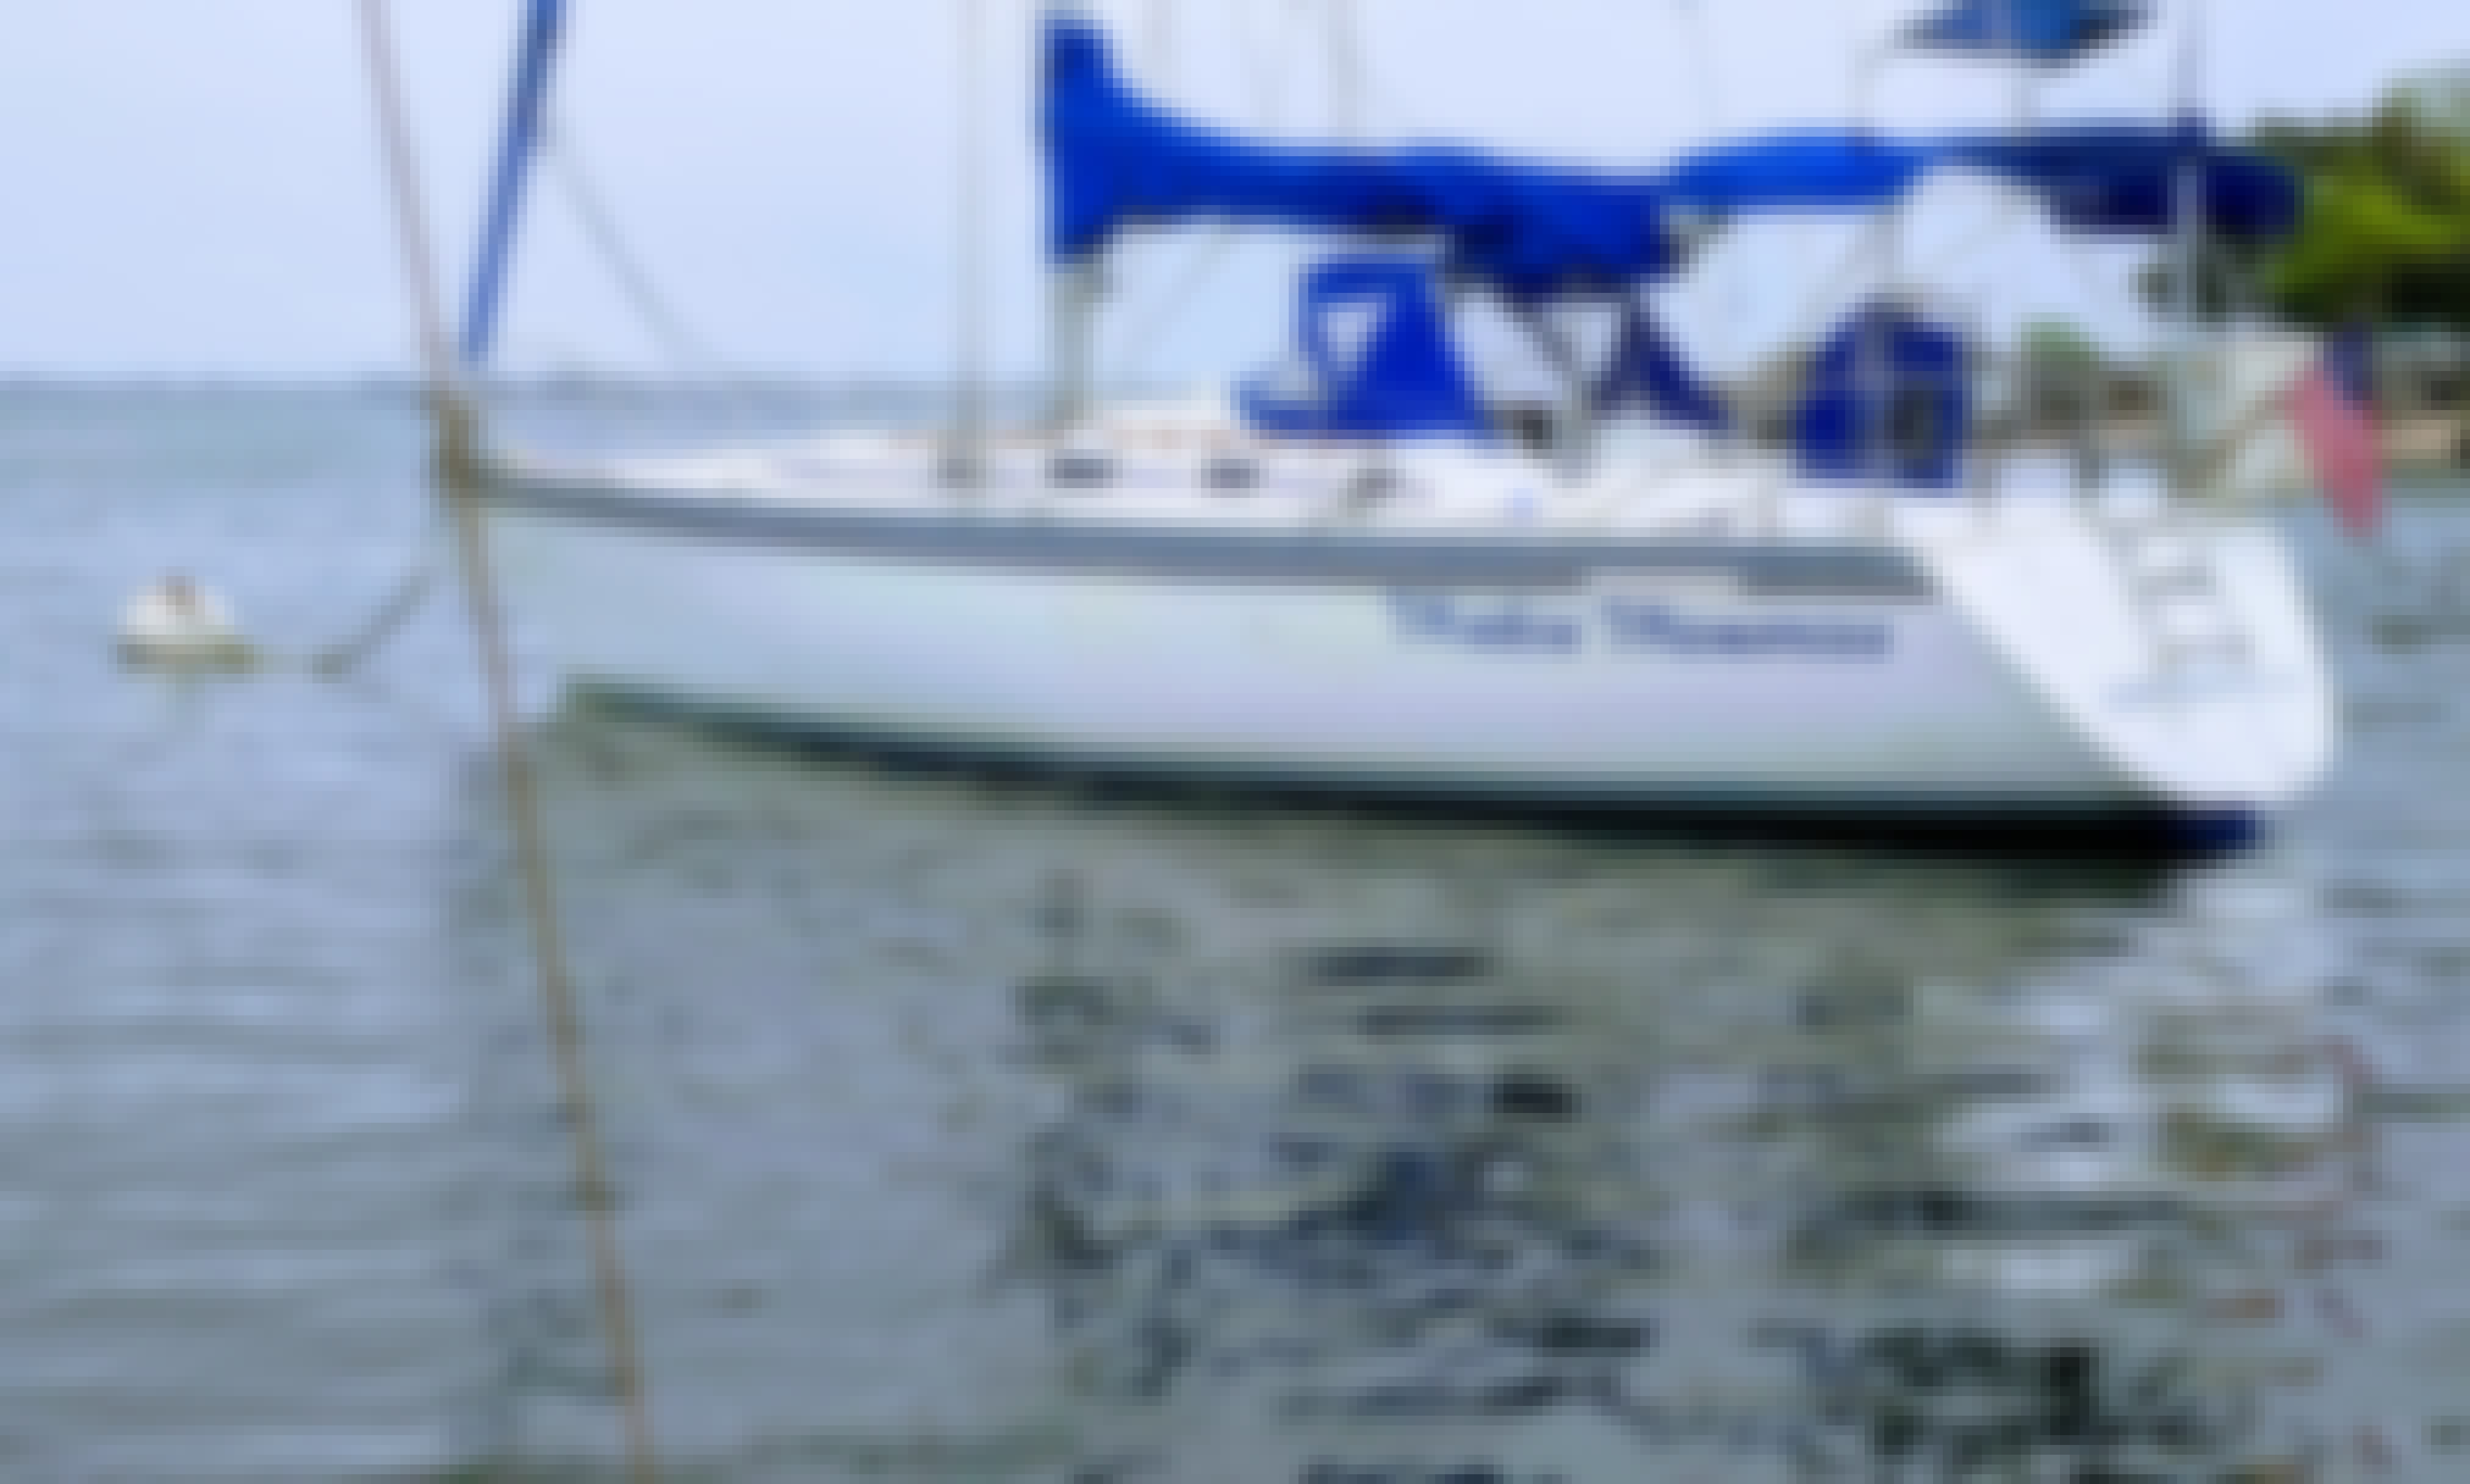 40' Hunter Sailboat for 6 People in Sheepshead Bay with Captain George